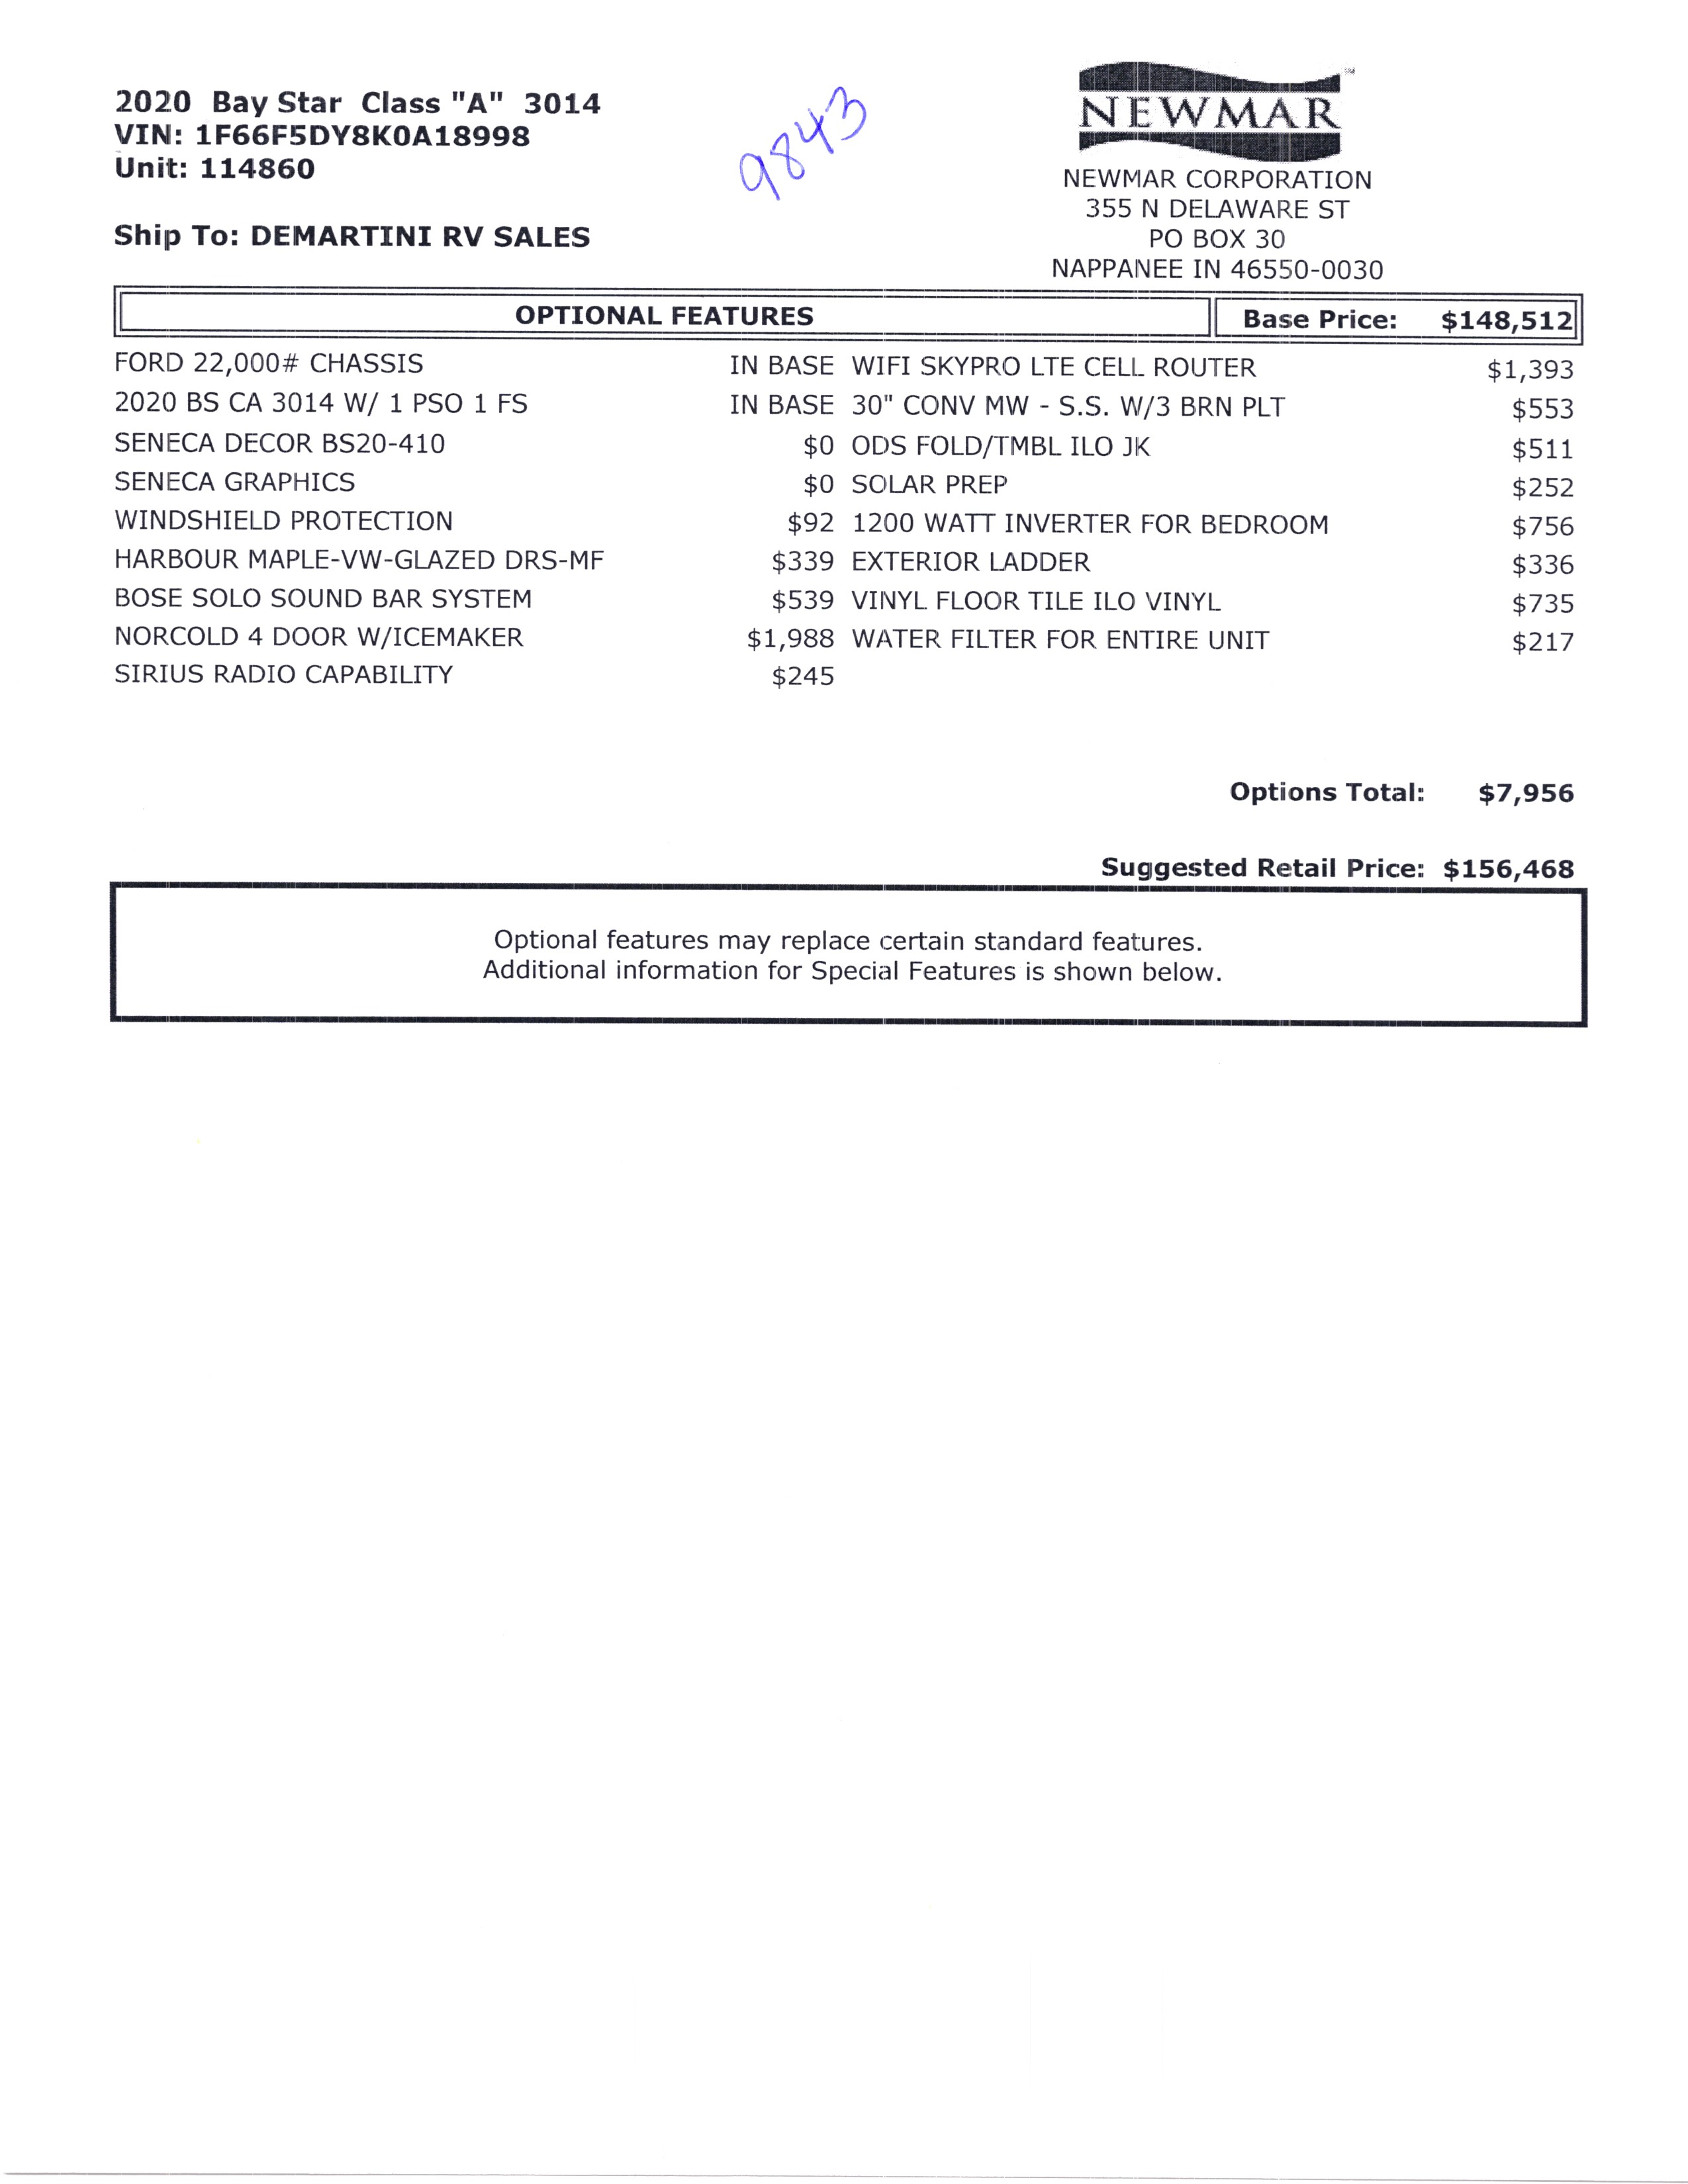 2020 Newmar Bay Star 3014 MSRP Sheet